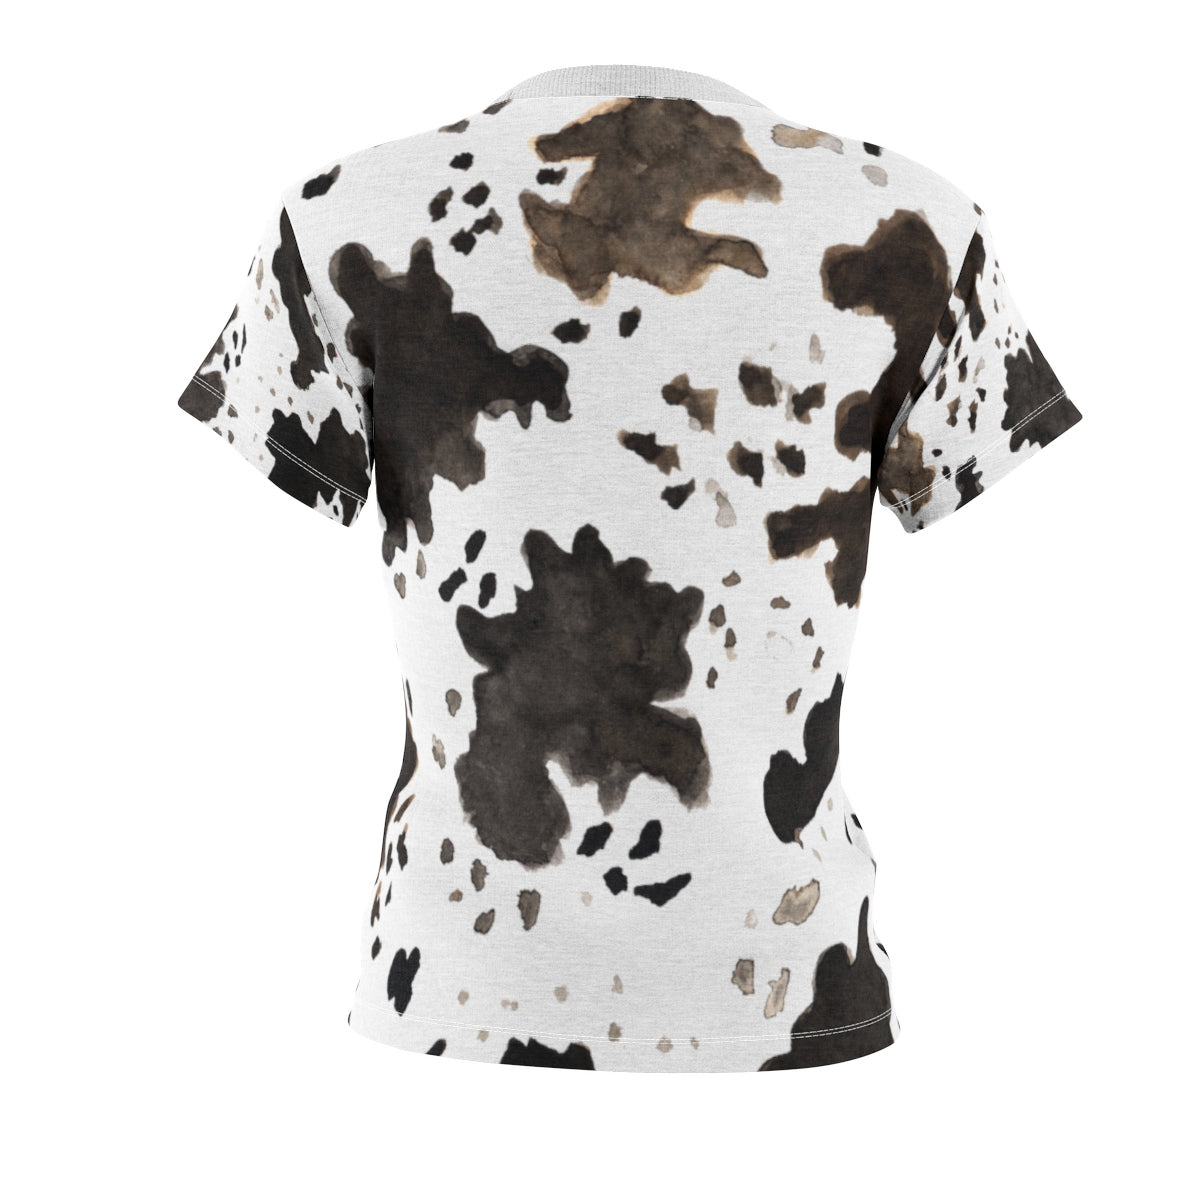 Cow Print Regular Fit Crew Neck Women's Cut & Sew Crew Neck Tee -Made in USA-T-Shirt-4 oz.-White Seams-L-Heidi Kimura Art LLC